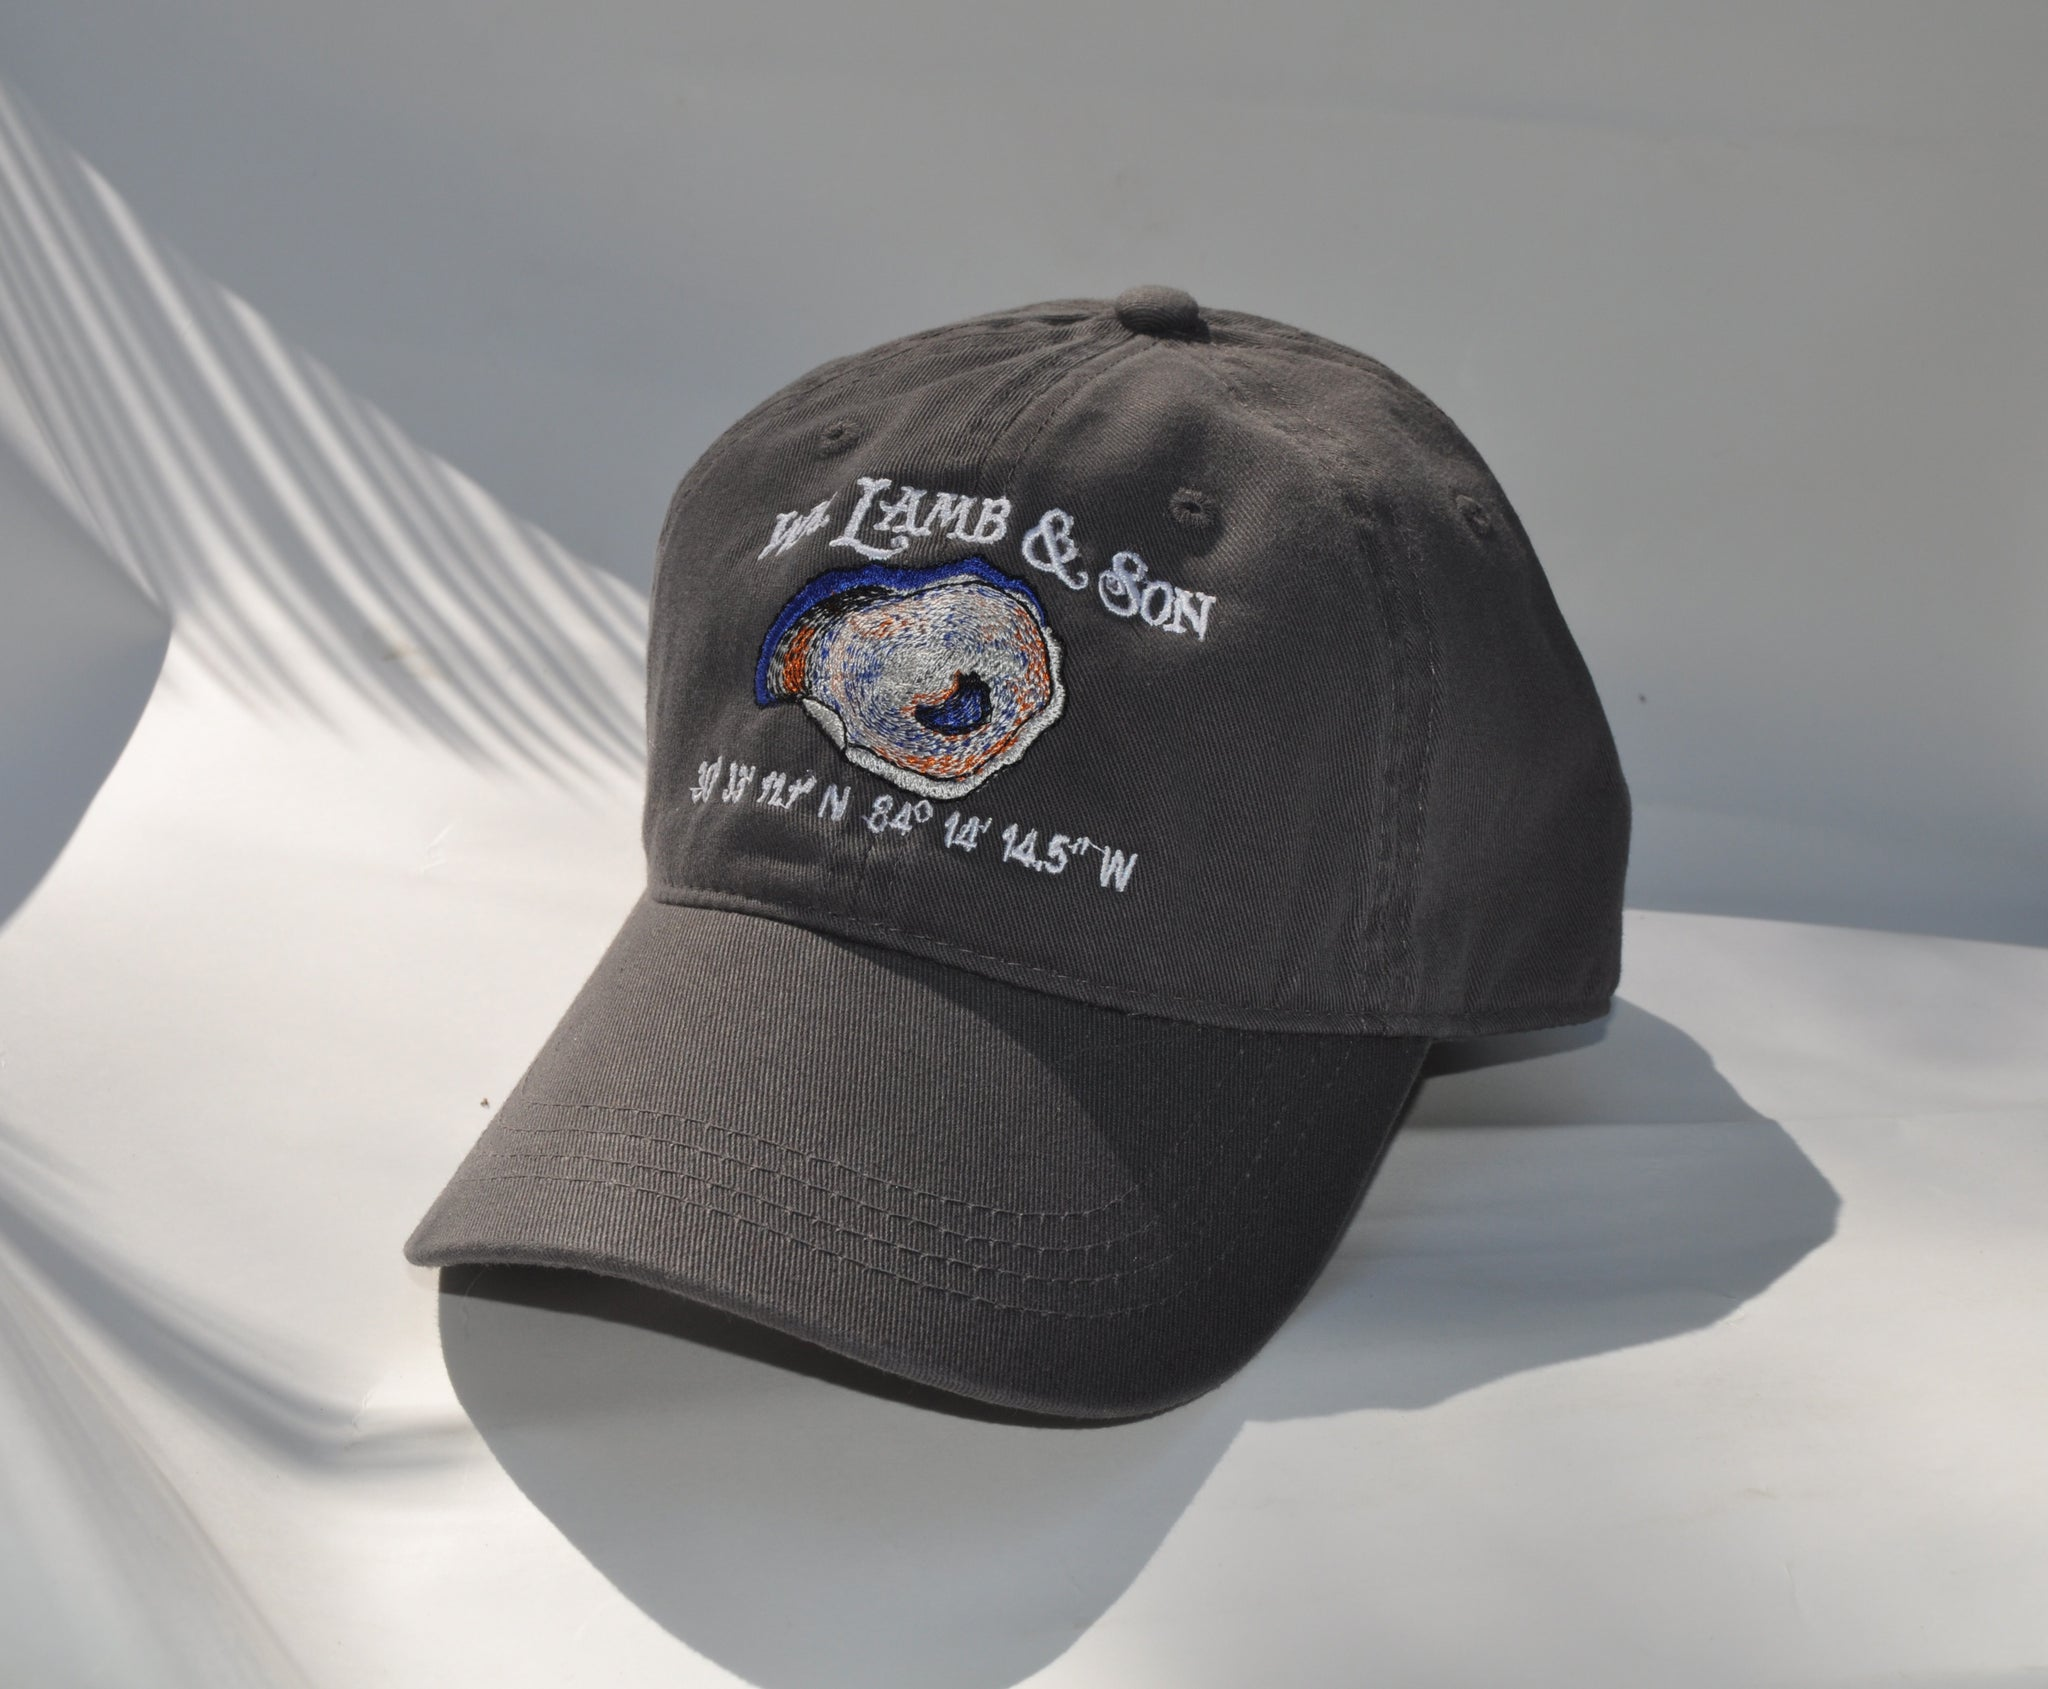 Ball Cap - WLS Oyster on Grey Twill